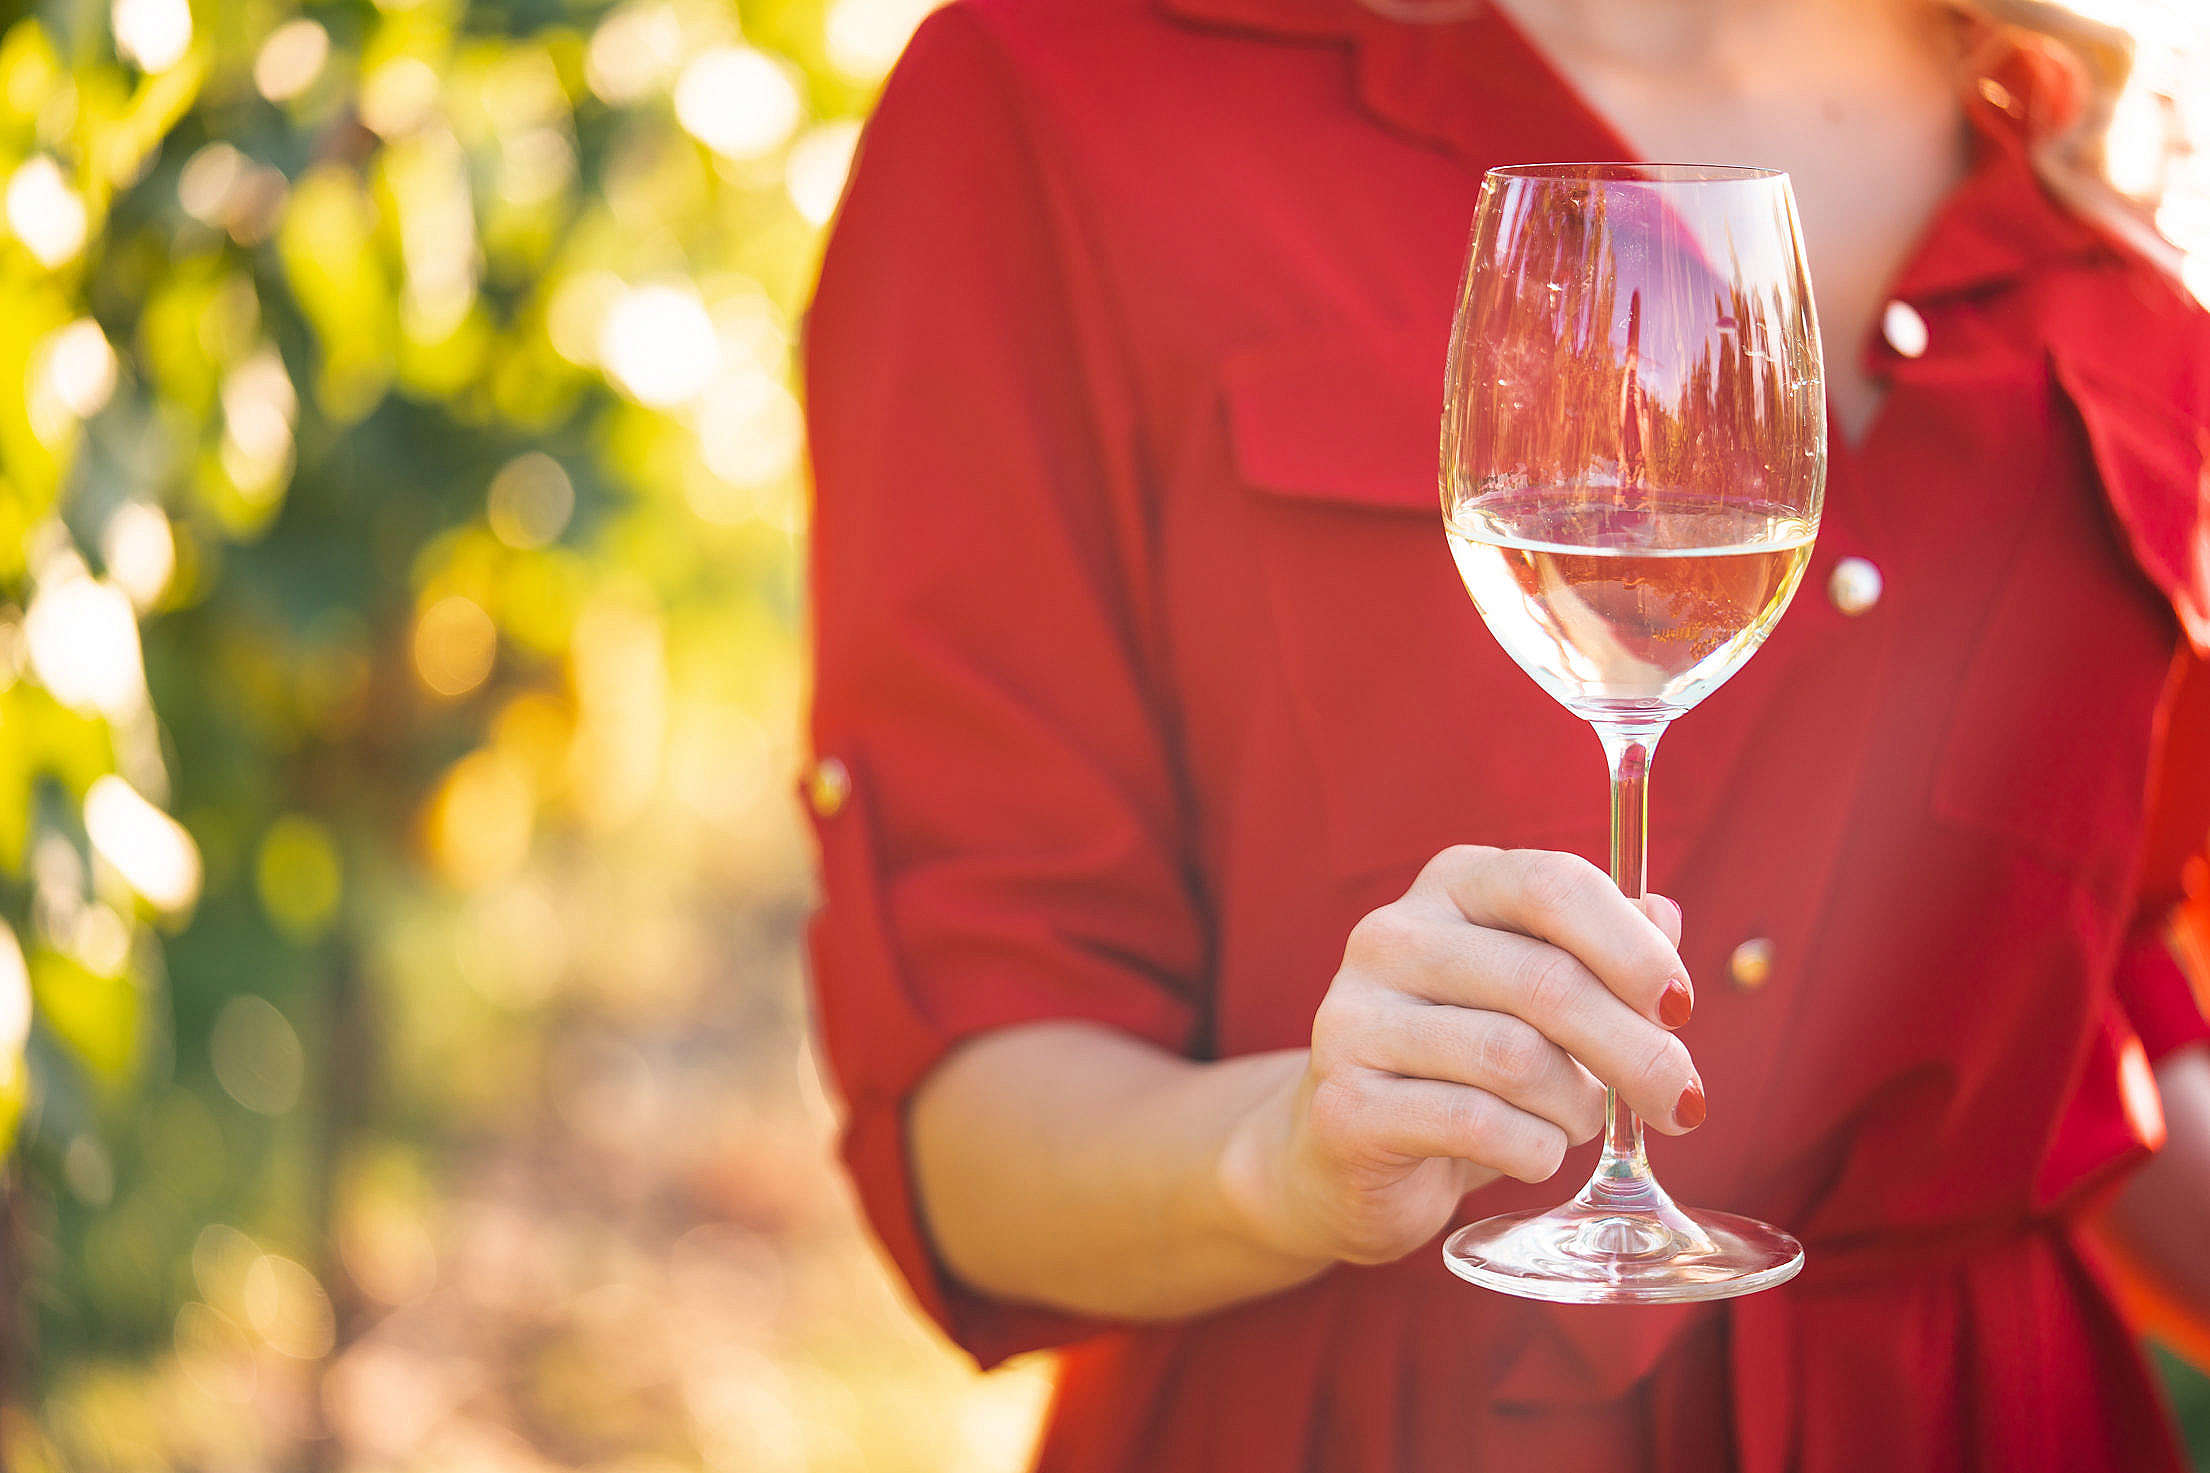 Woman Holding a Glass of Wine in a Vineyard Free Stock Photo